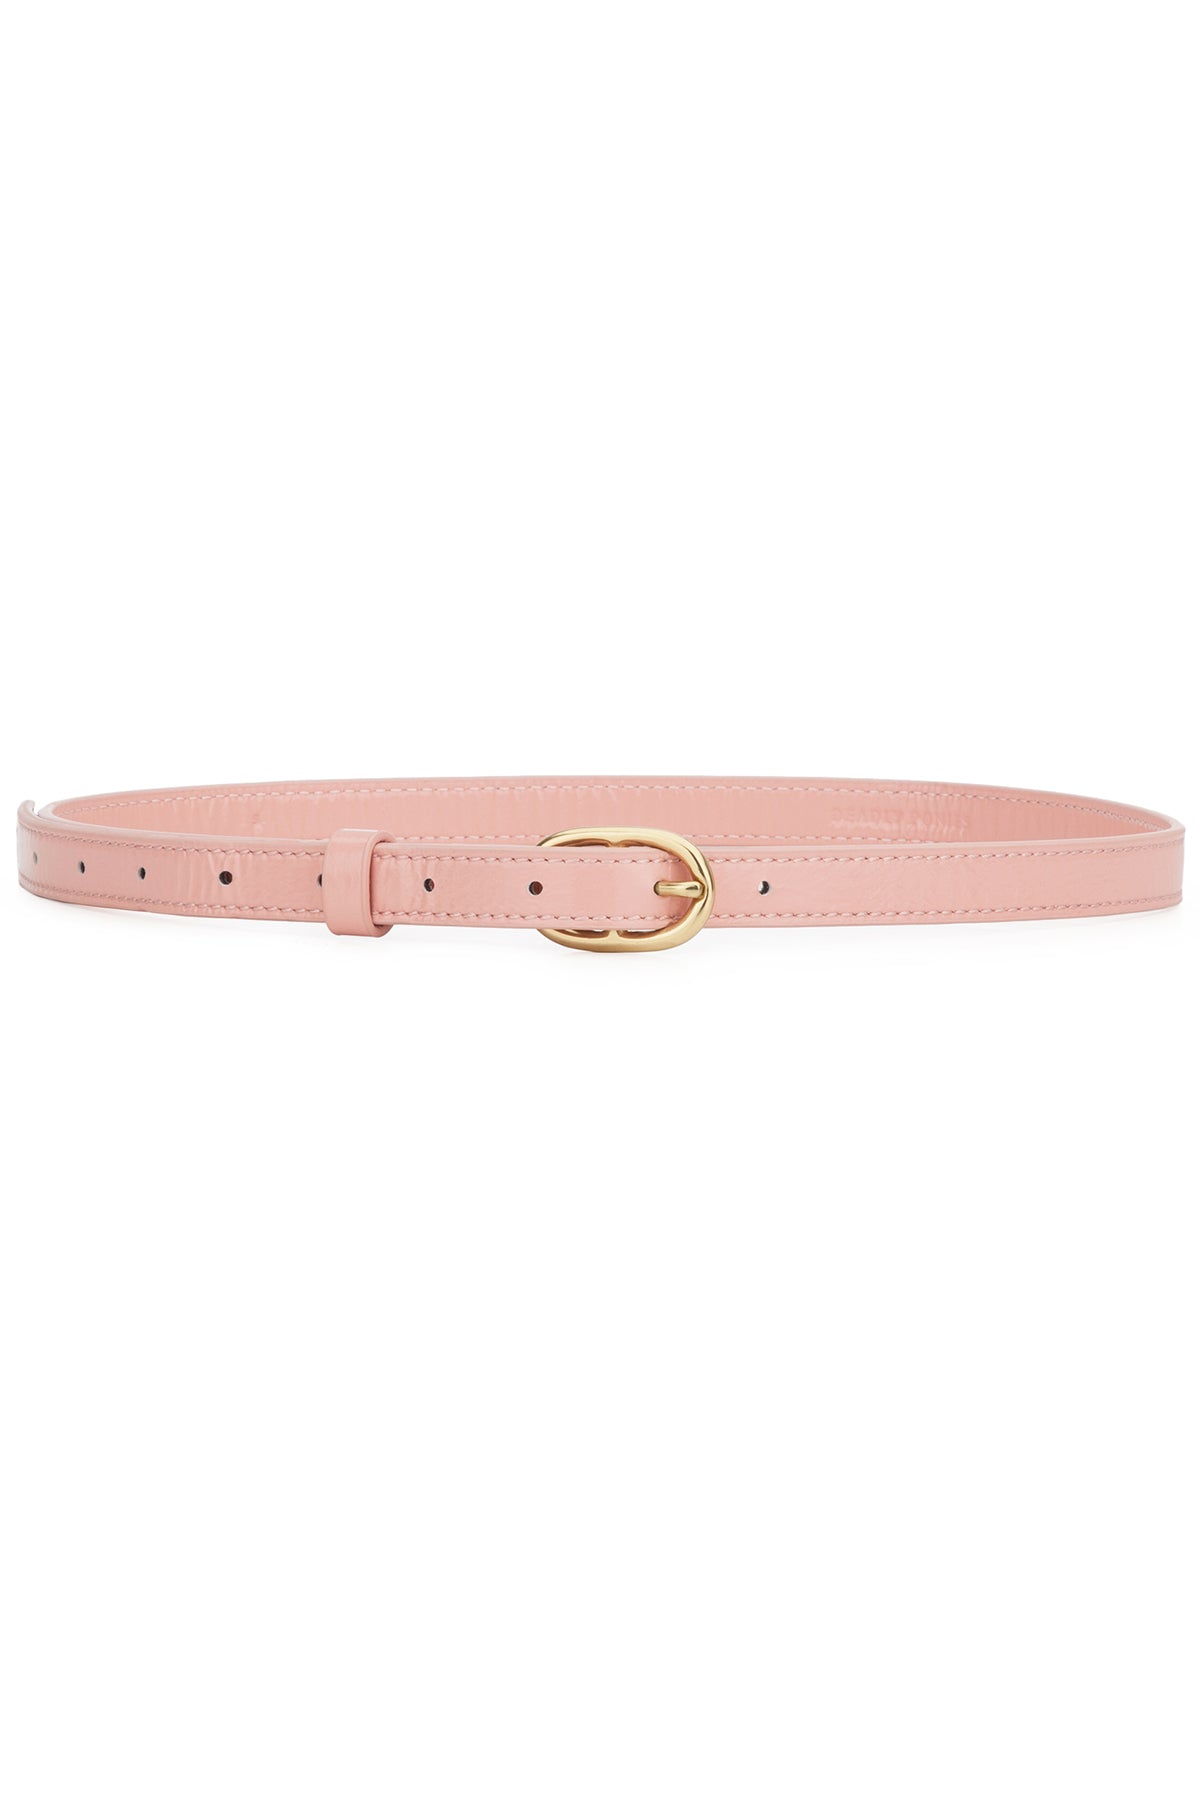 Deadly Ponies Slim Belt // Patent Blush